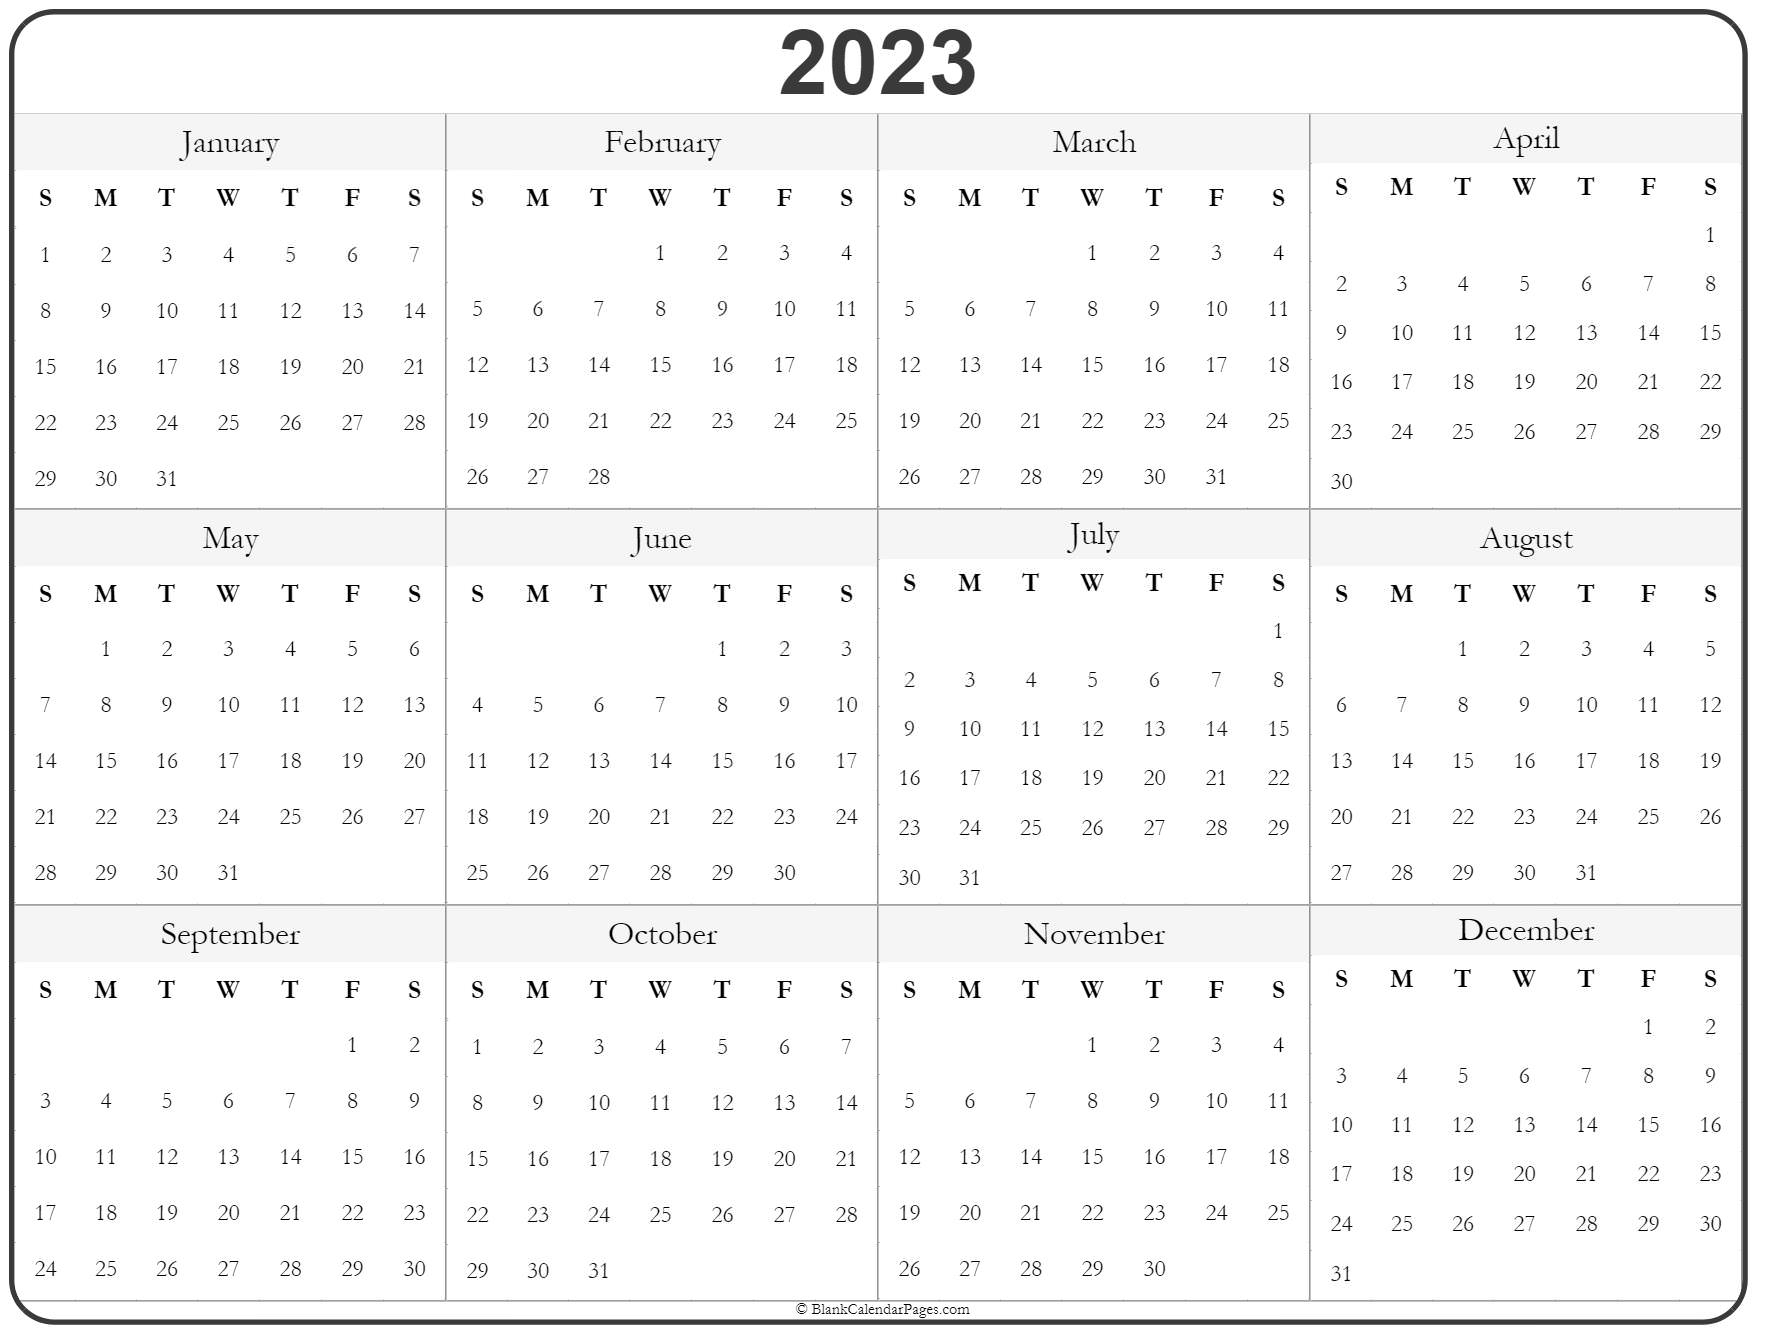 2023 Year Calendar | Yearly Printable inside 1 Page Printable 2023 Calendar